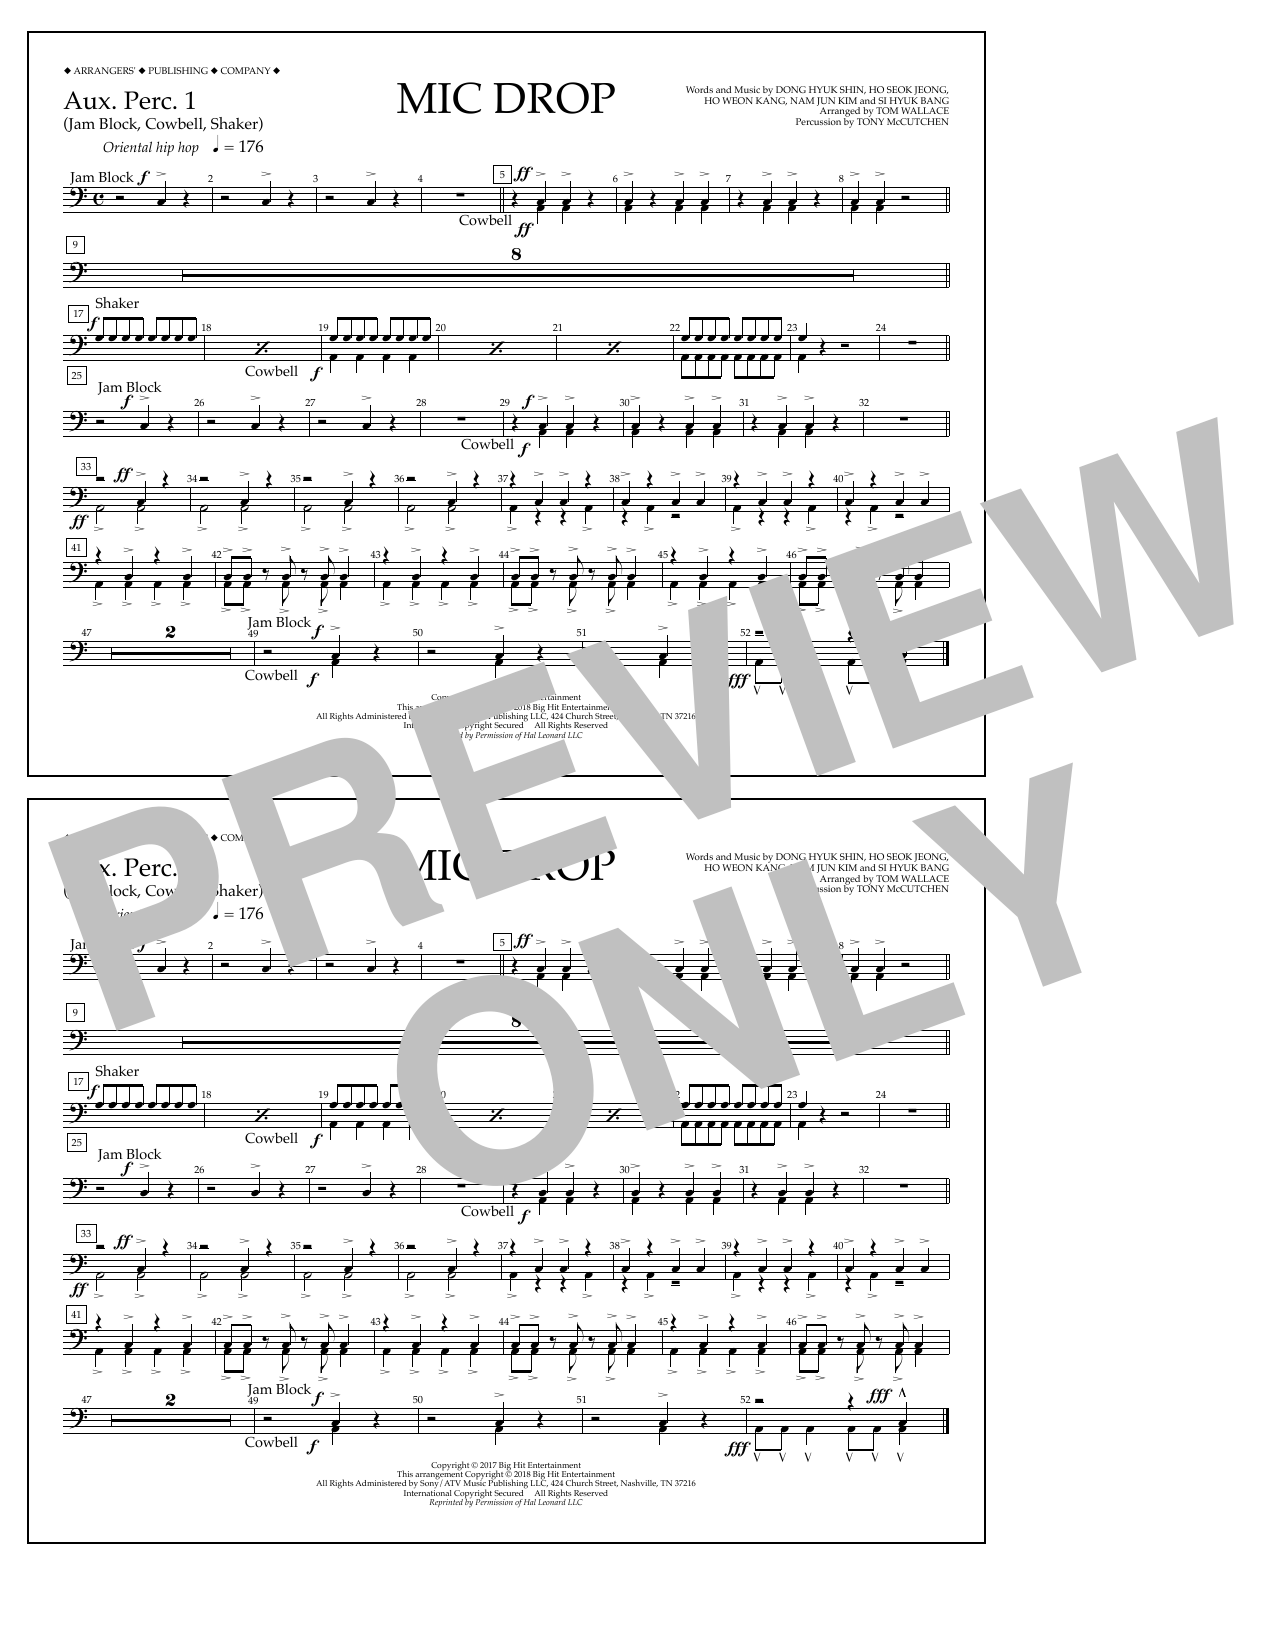 Download Tom Wallace 'Mic Drop - Aux. Perc. 1' Digital Sheet Music Notes & Chords and start playing in minutes